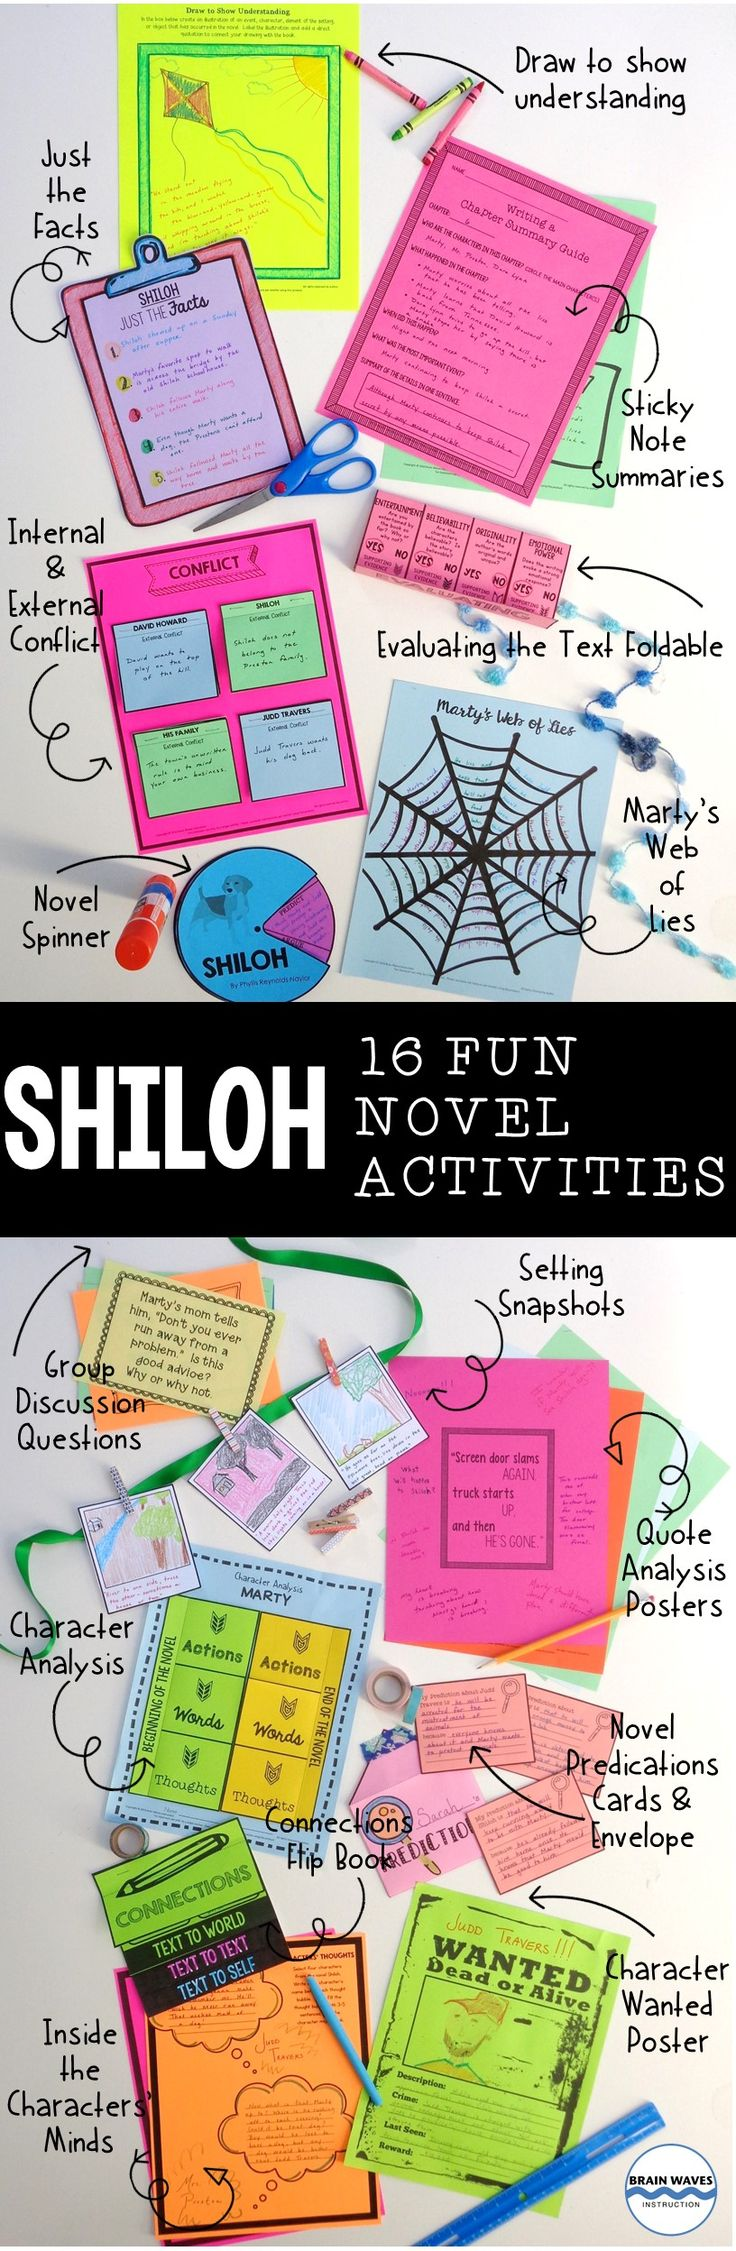 hight resolution of Shiloh Lessons and Activities - 16 Engaging Chapter-by-Chapter Activities    Novel activities